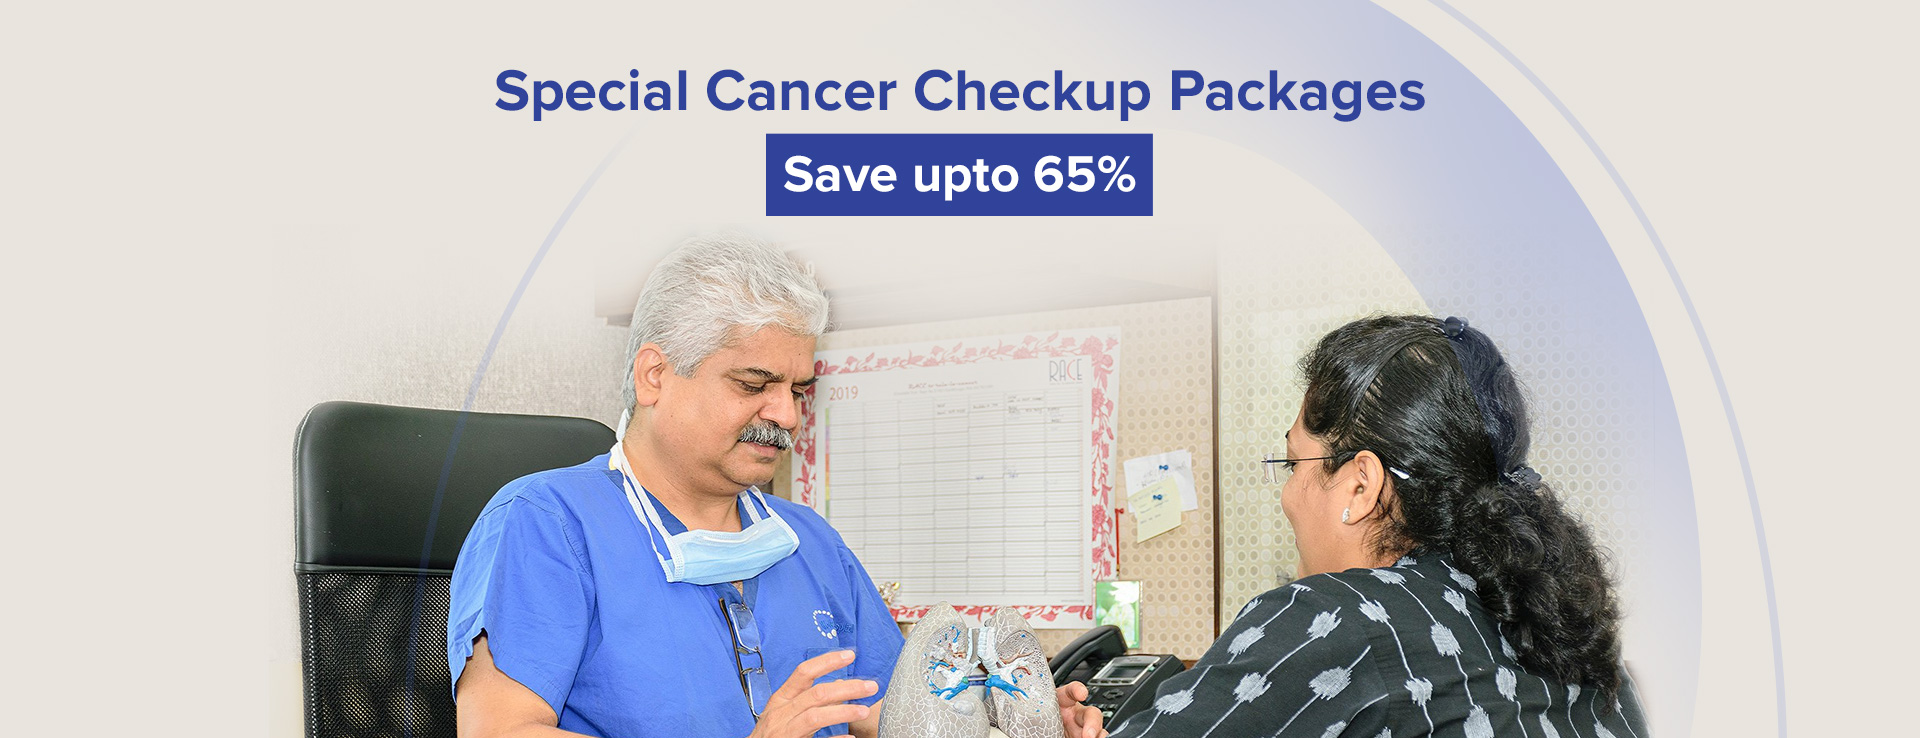 Cancer Health Checkup Packages